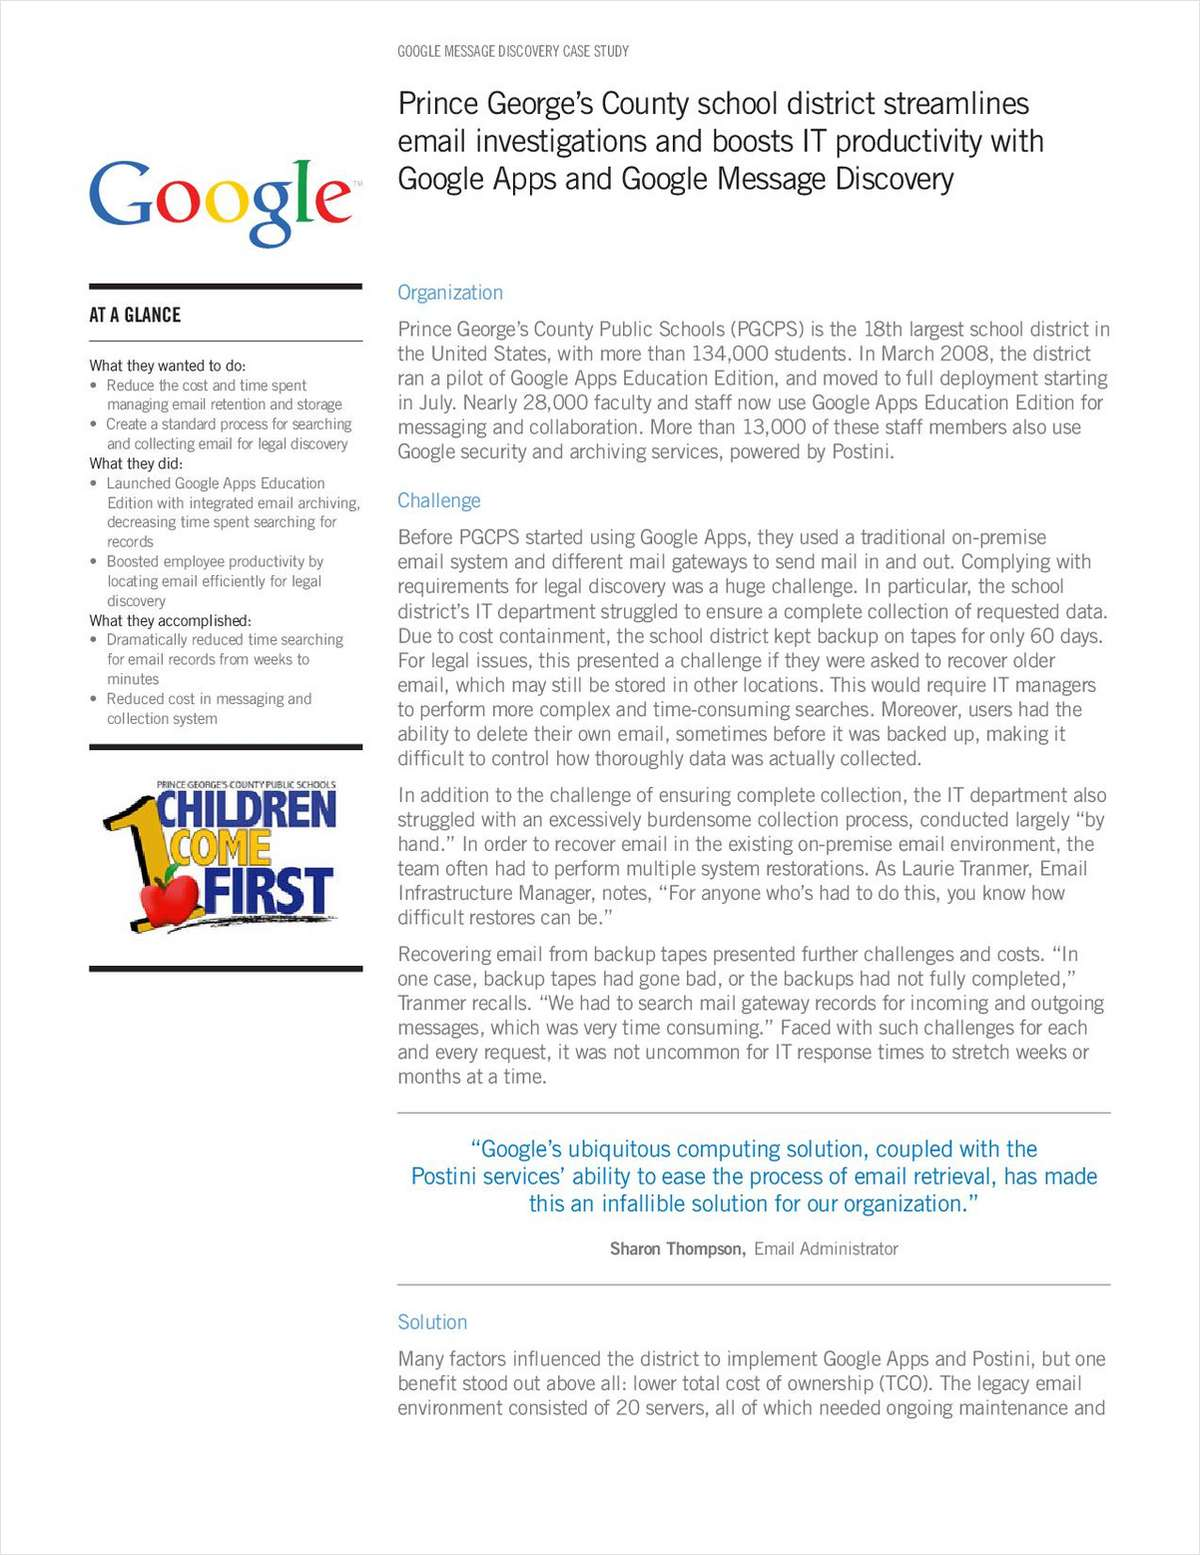 Prince George's County Public Schools Goes Google with Apps and Message Discovery